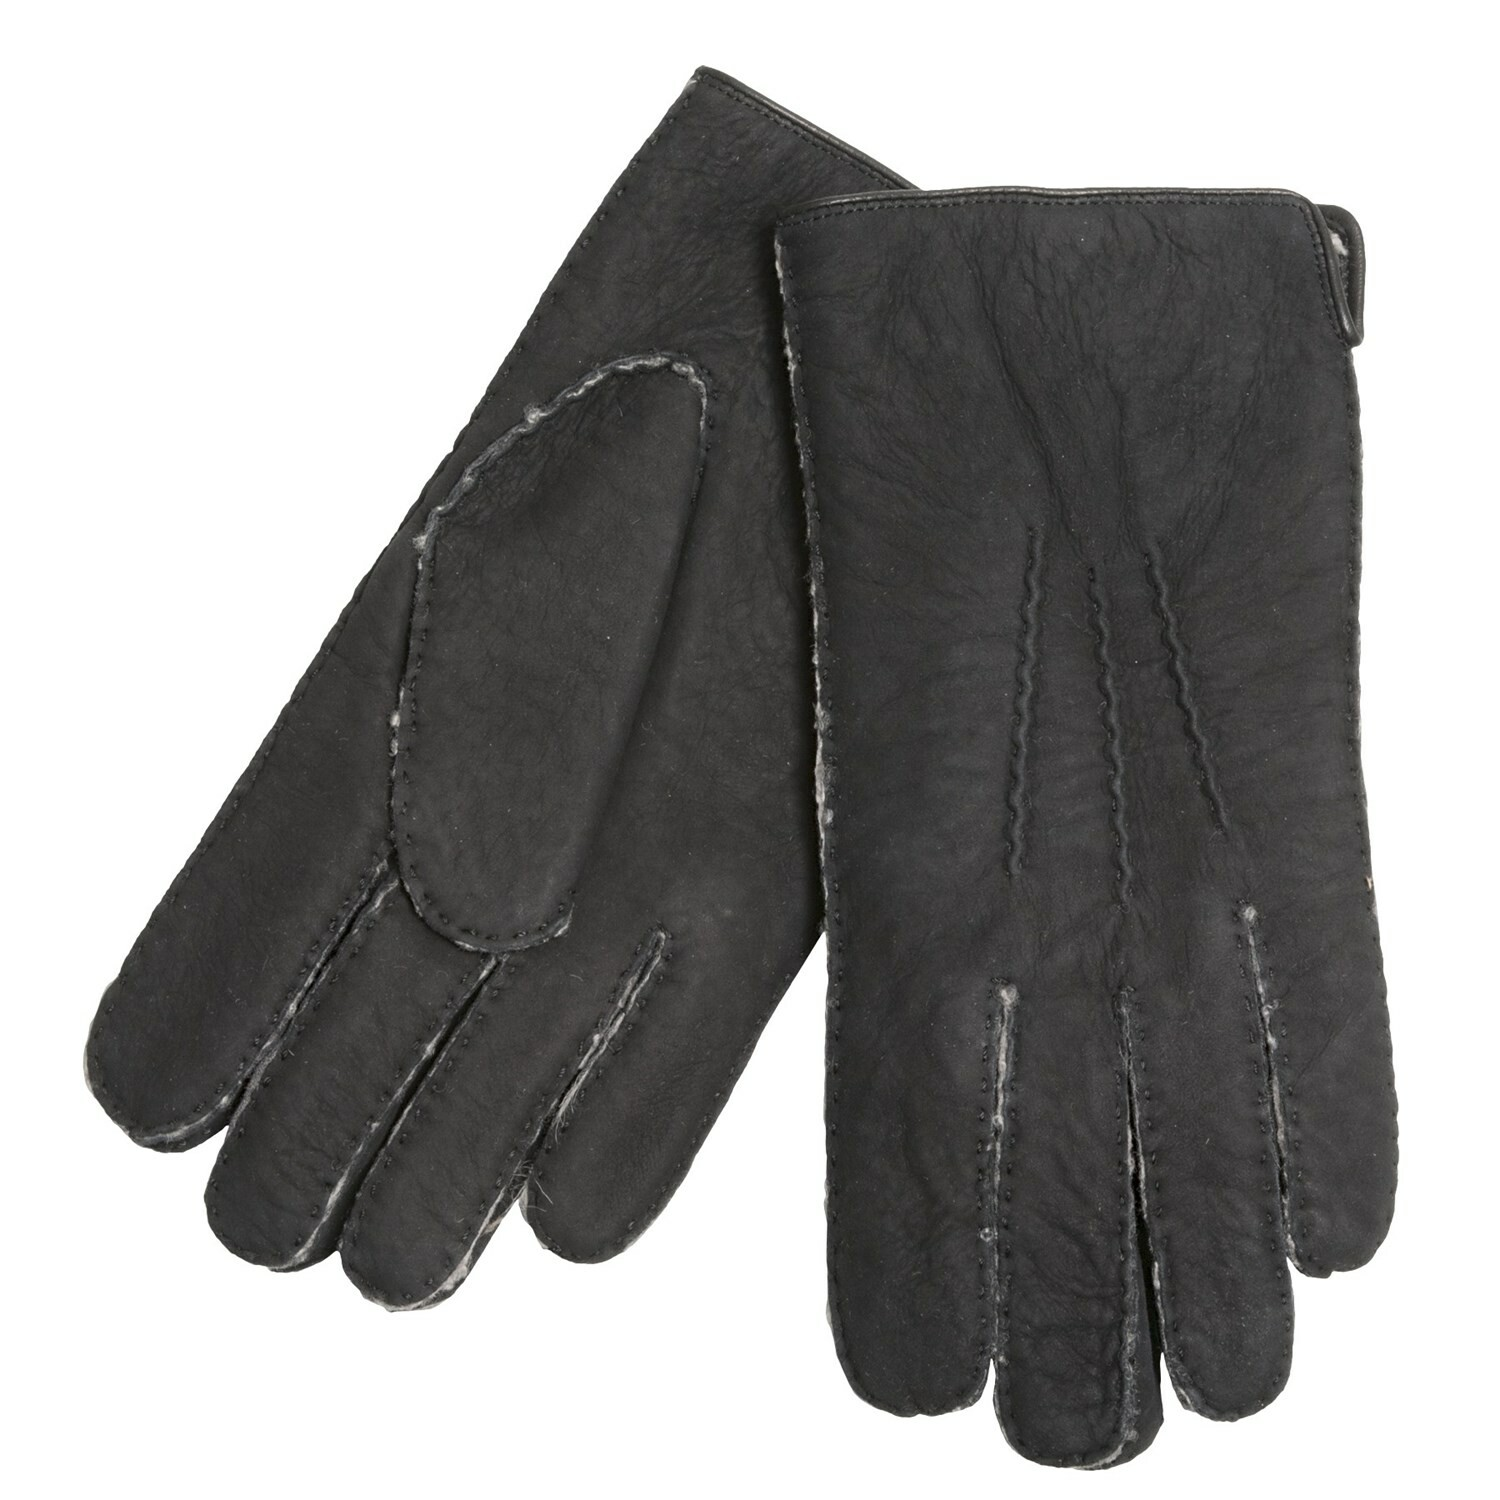 Black leather gloves brisbane - Mens Sheepskin Gloves Black